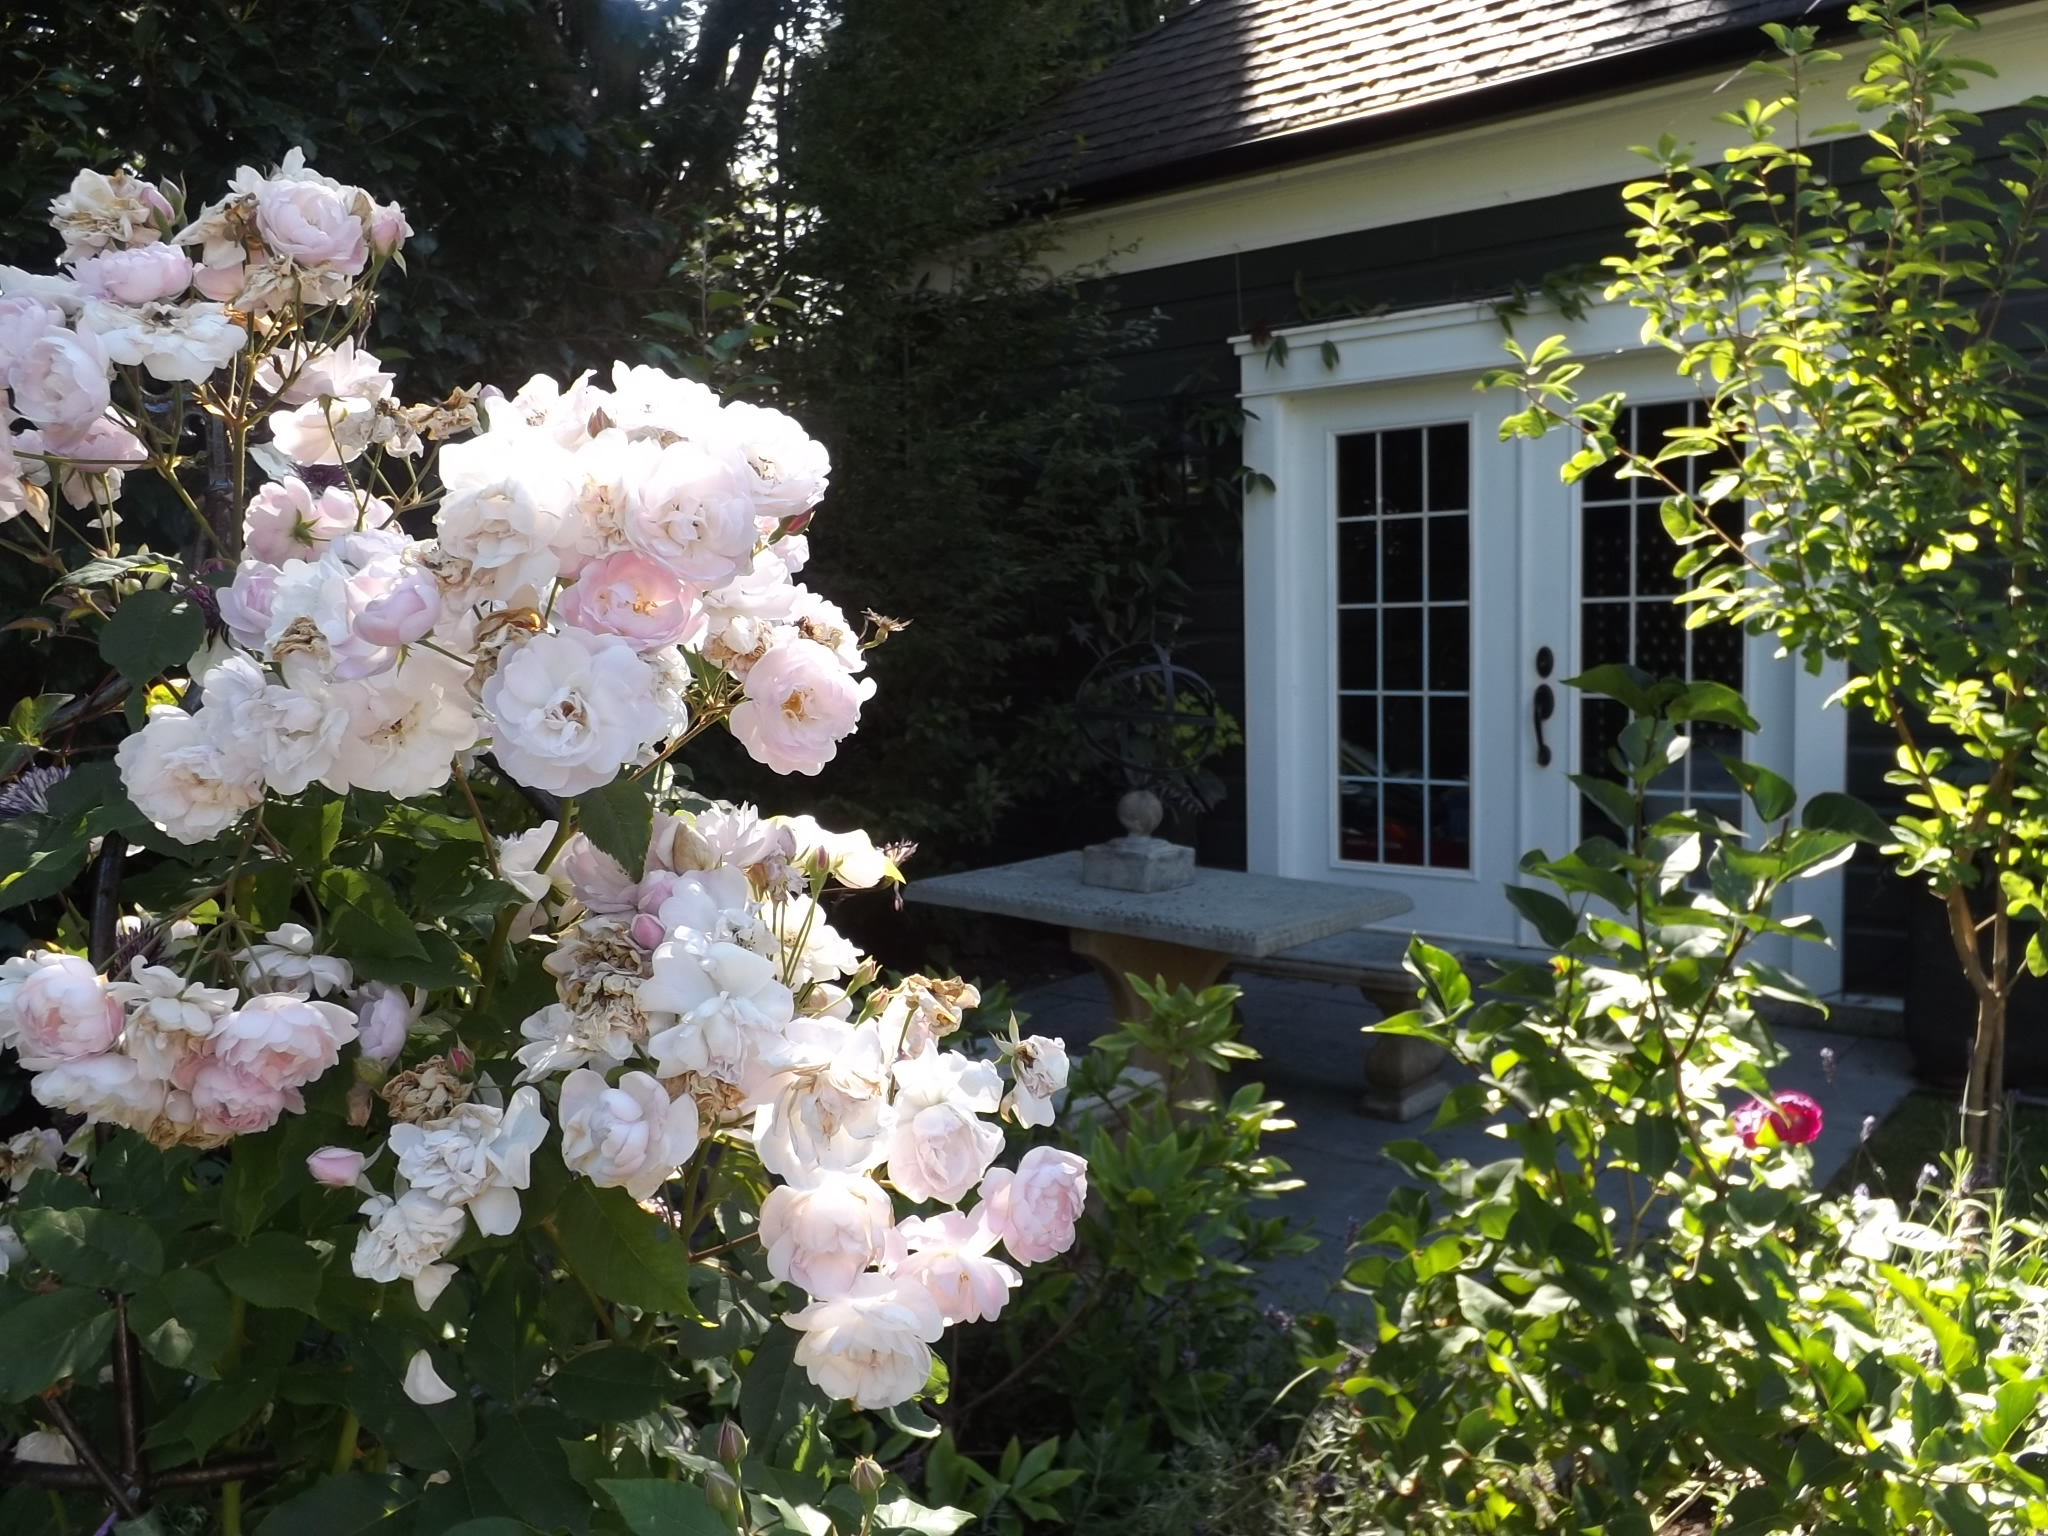 Roses outside a playhouse